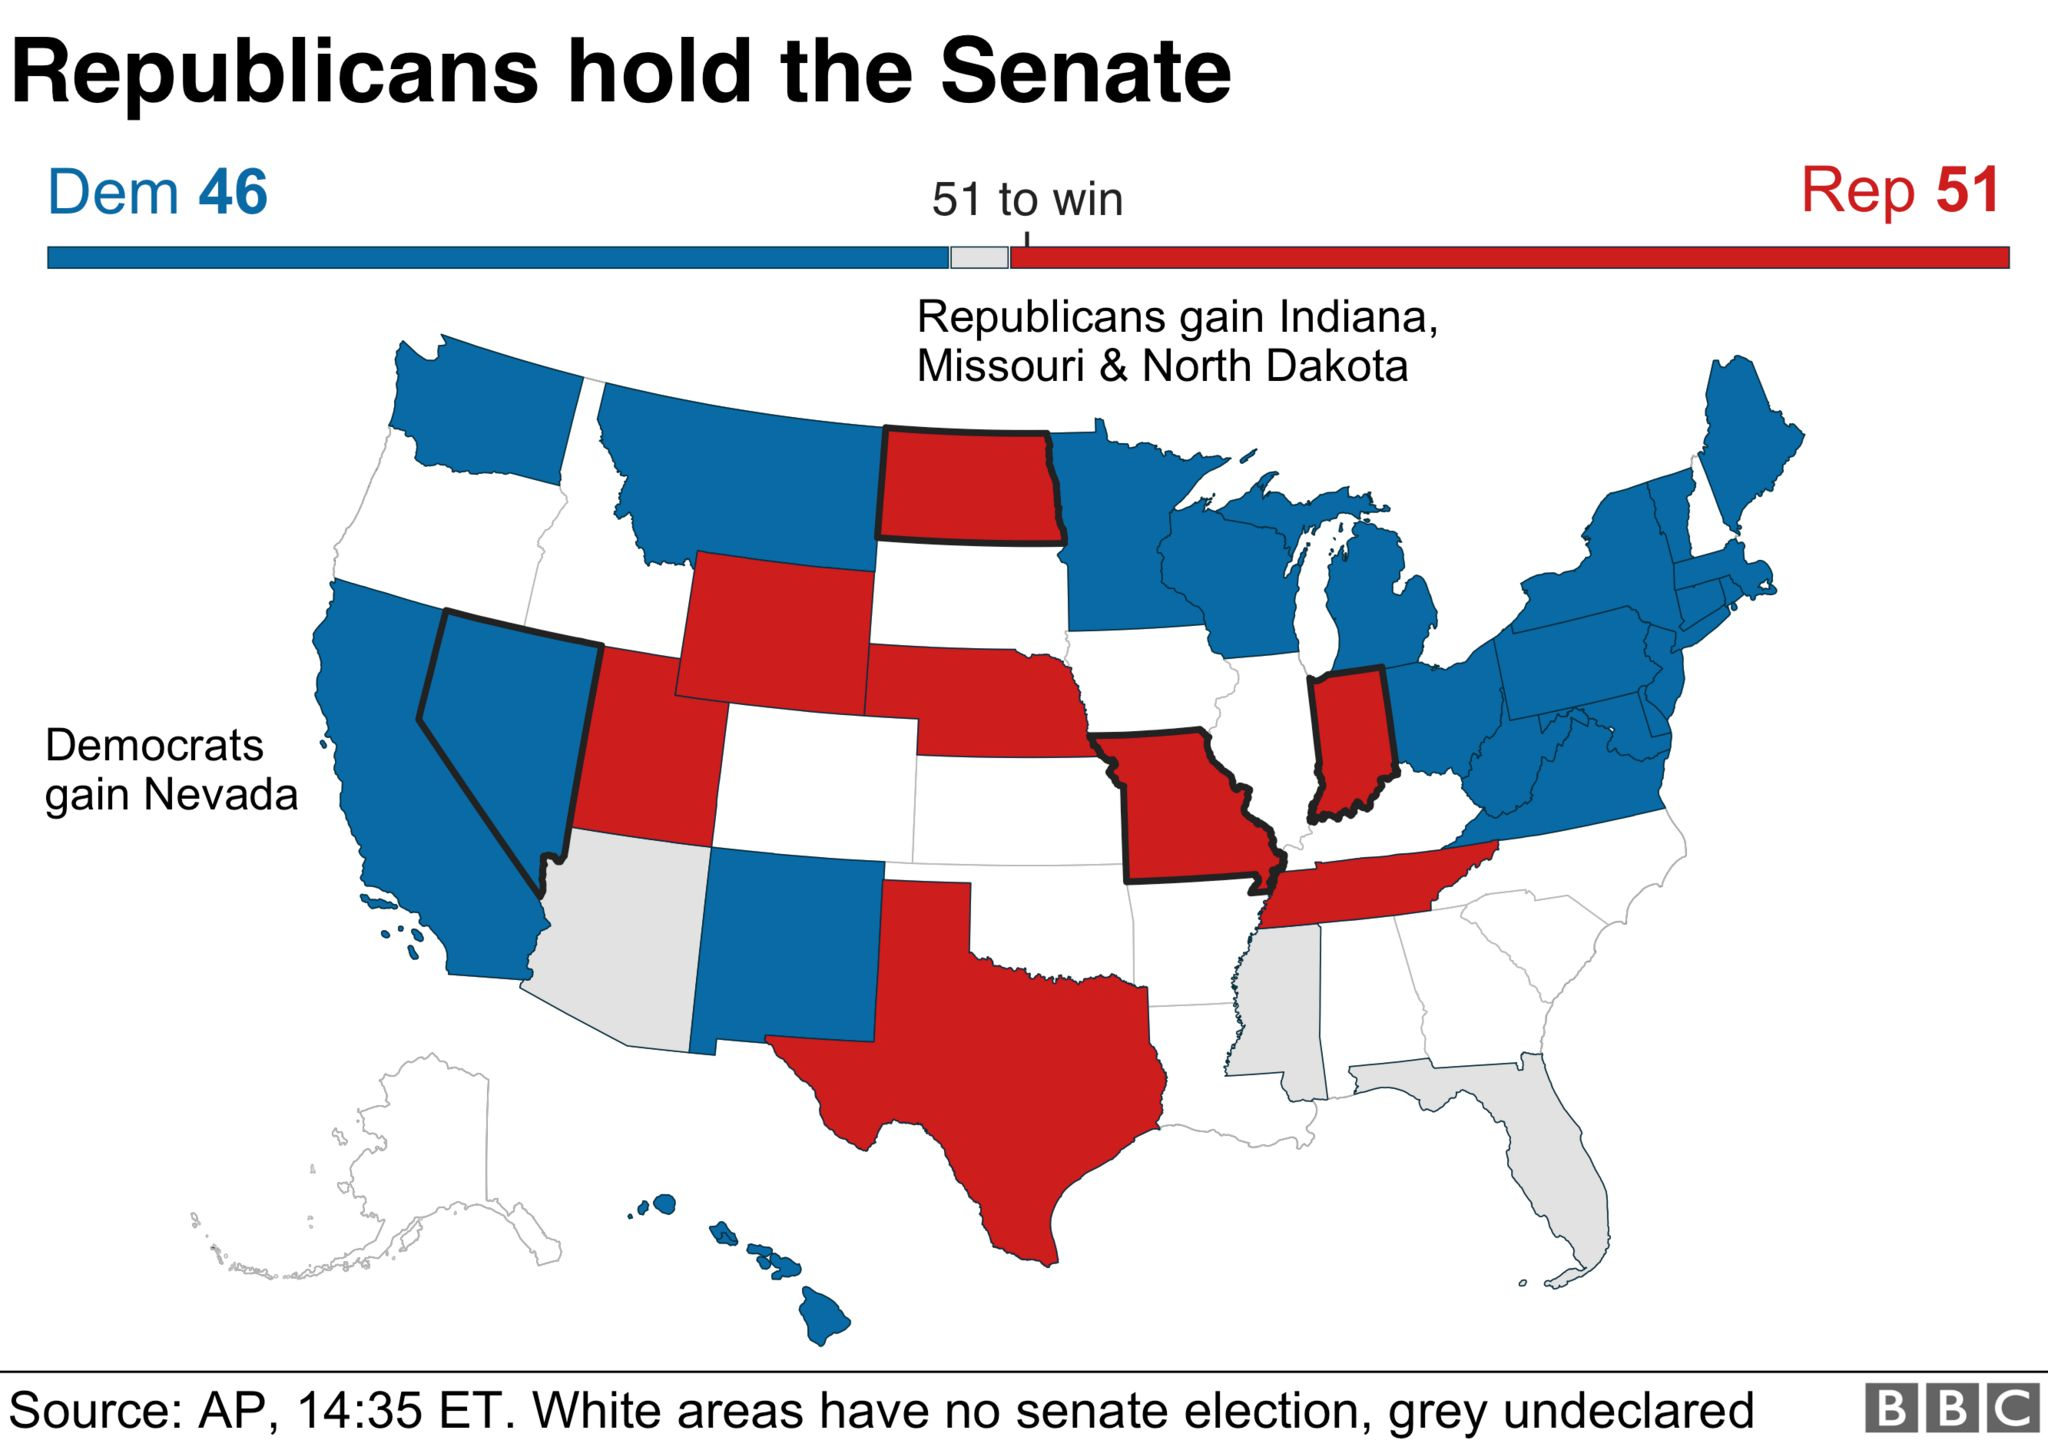 Map showing Republican gains in Senate